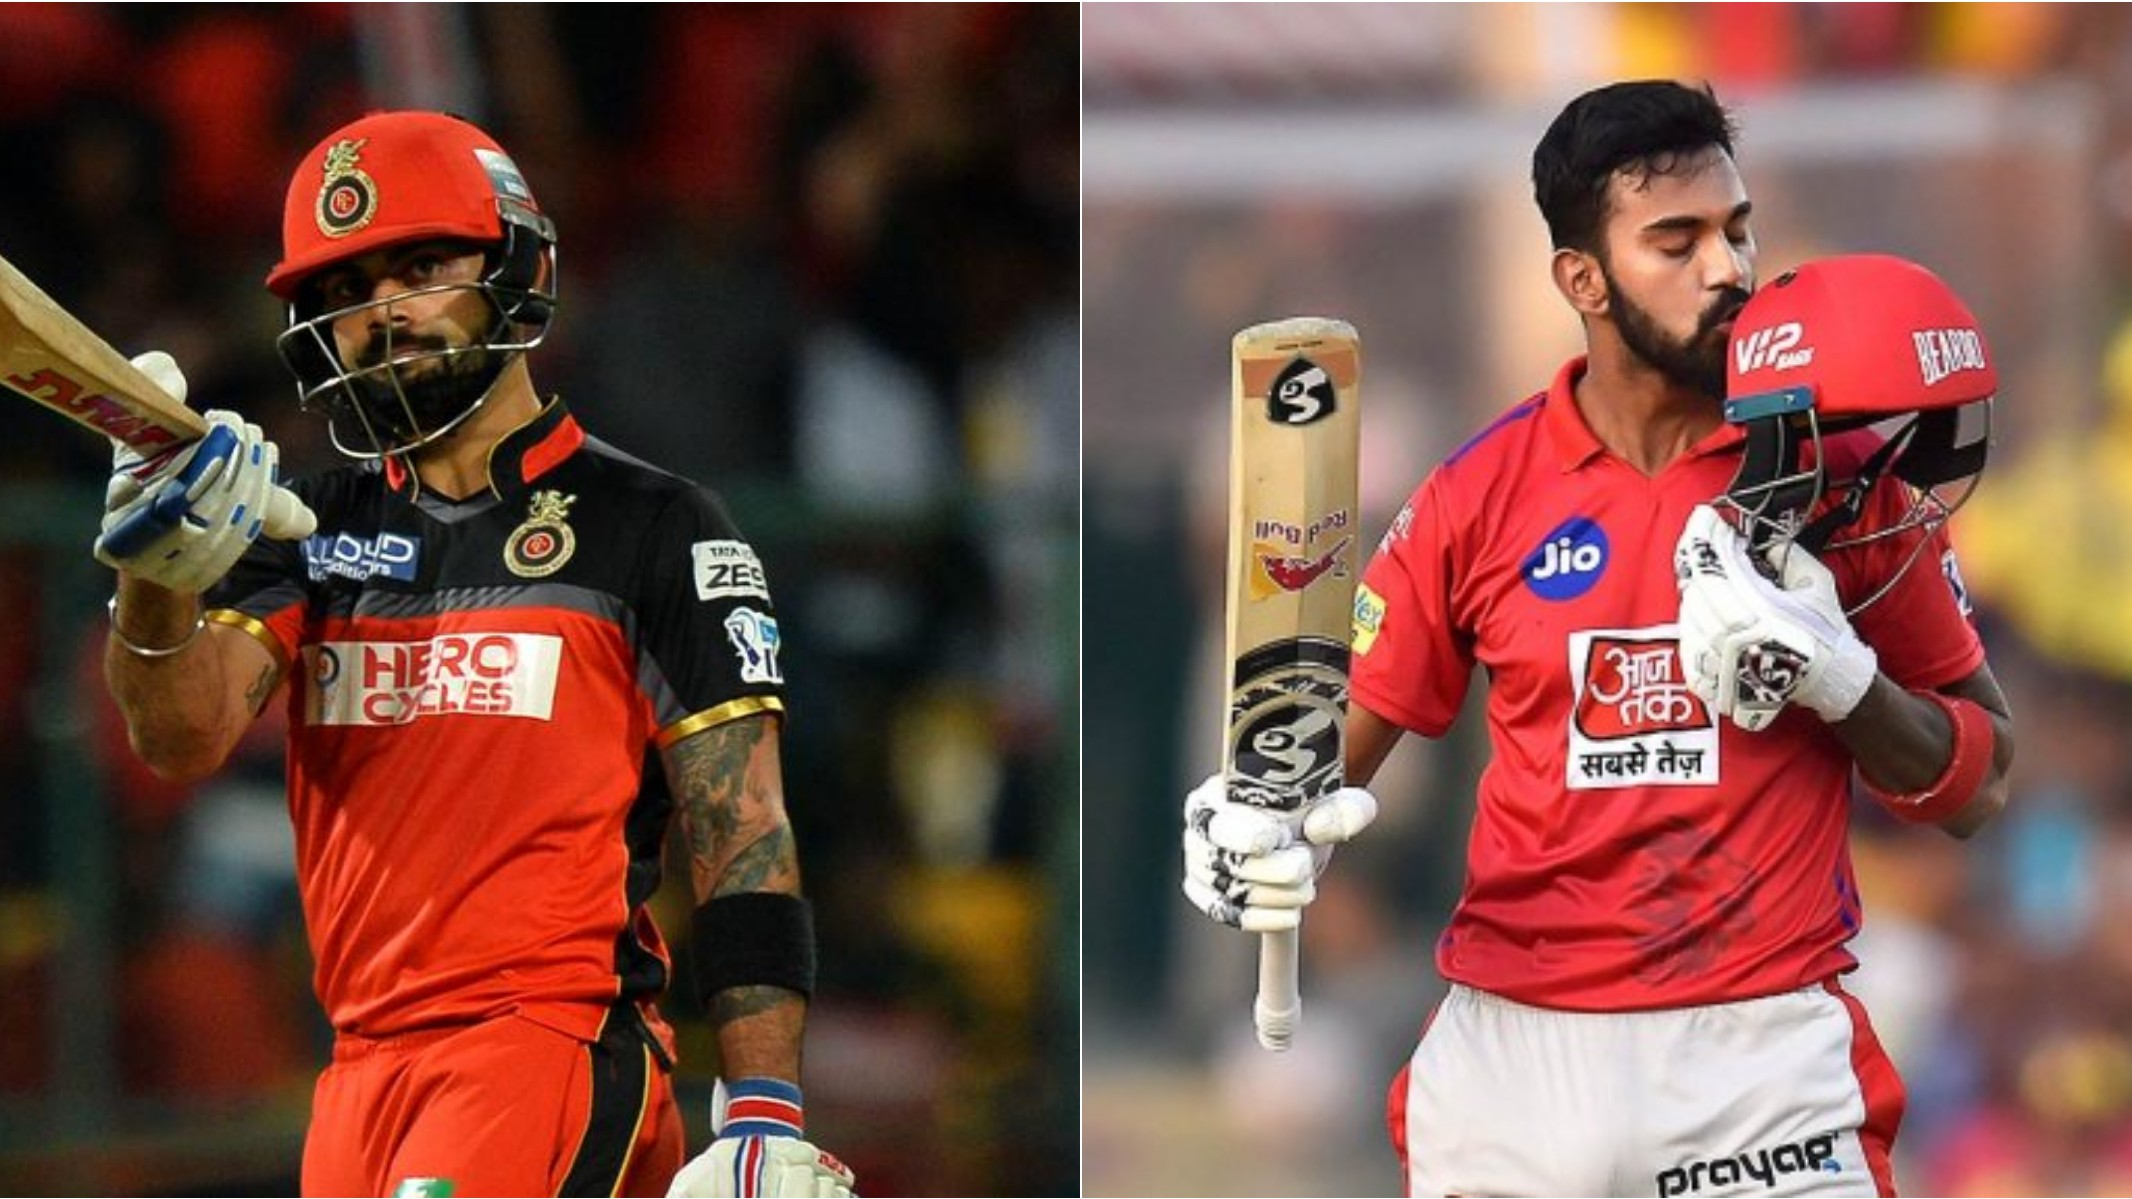 IPL 2020: Match 6, KXIP vs RCB – Fantasy Cricket Tips, Possible Playing XIs, Weather and Pitch